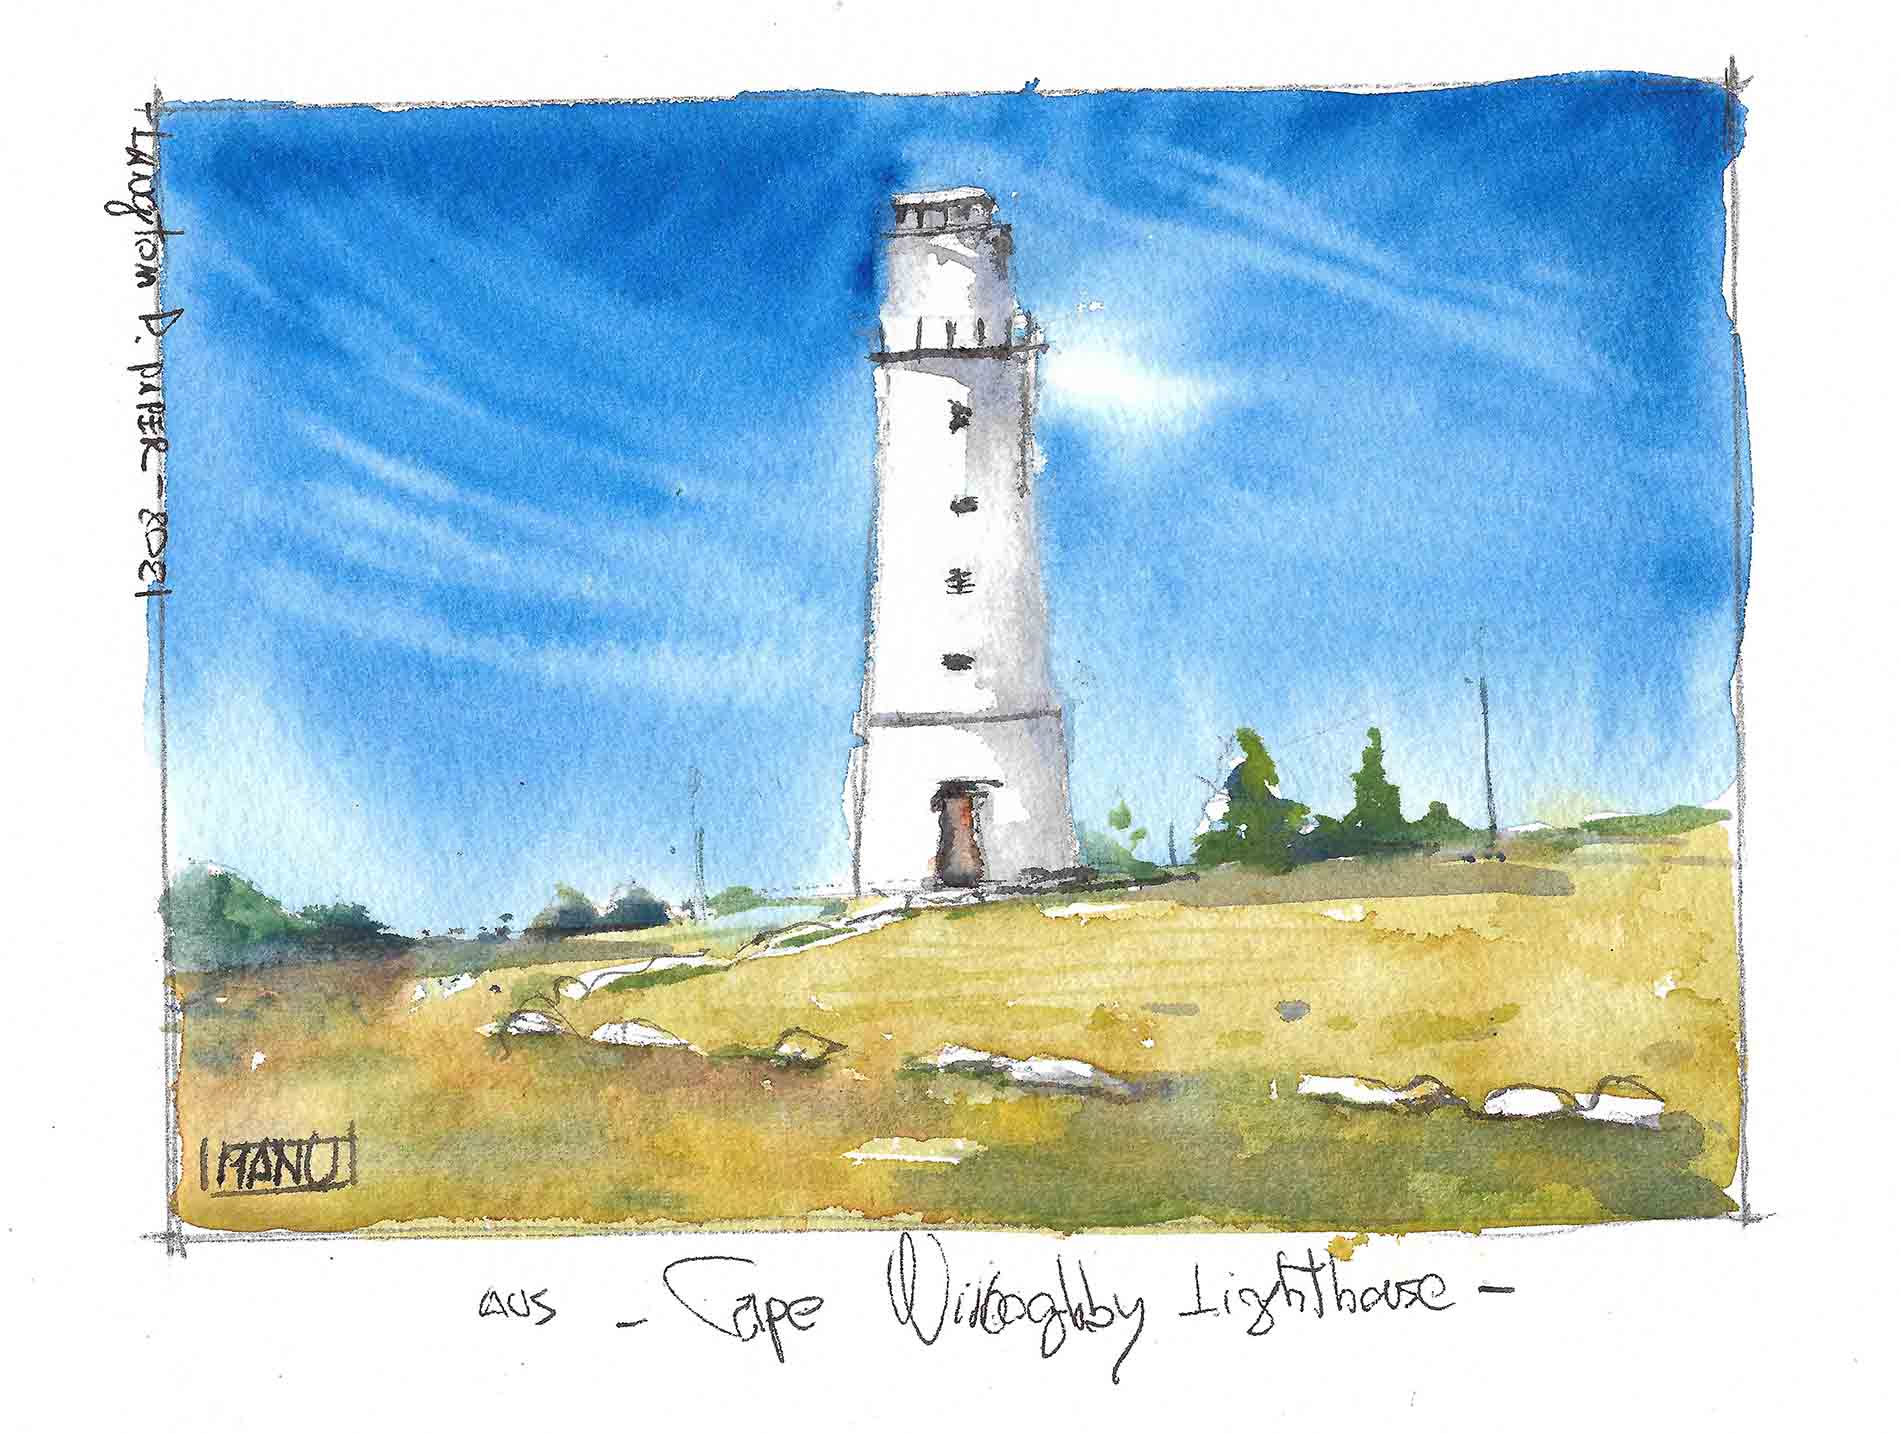 Cape Willoughby Australia Aquarelle Watercolour Emmanuele Cammarano fine artist